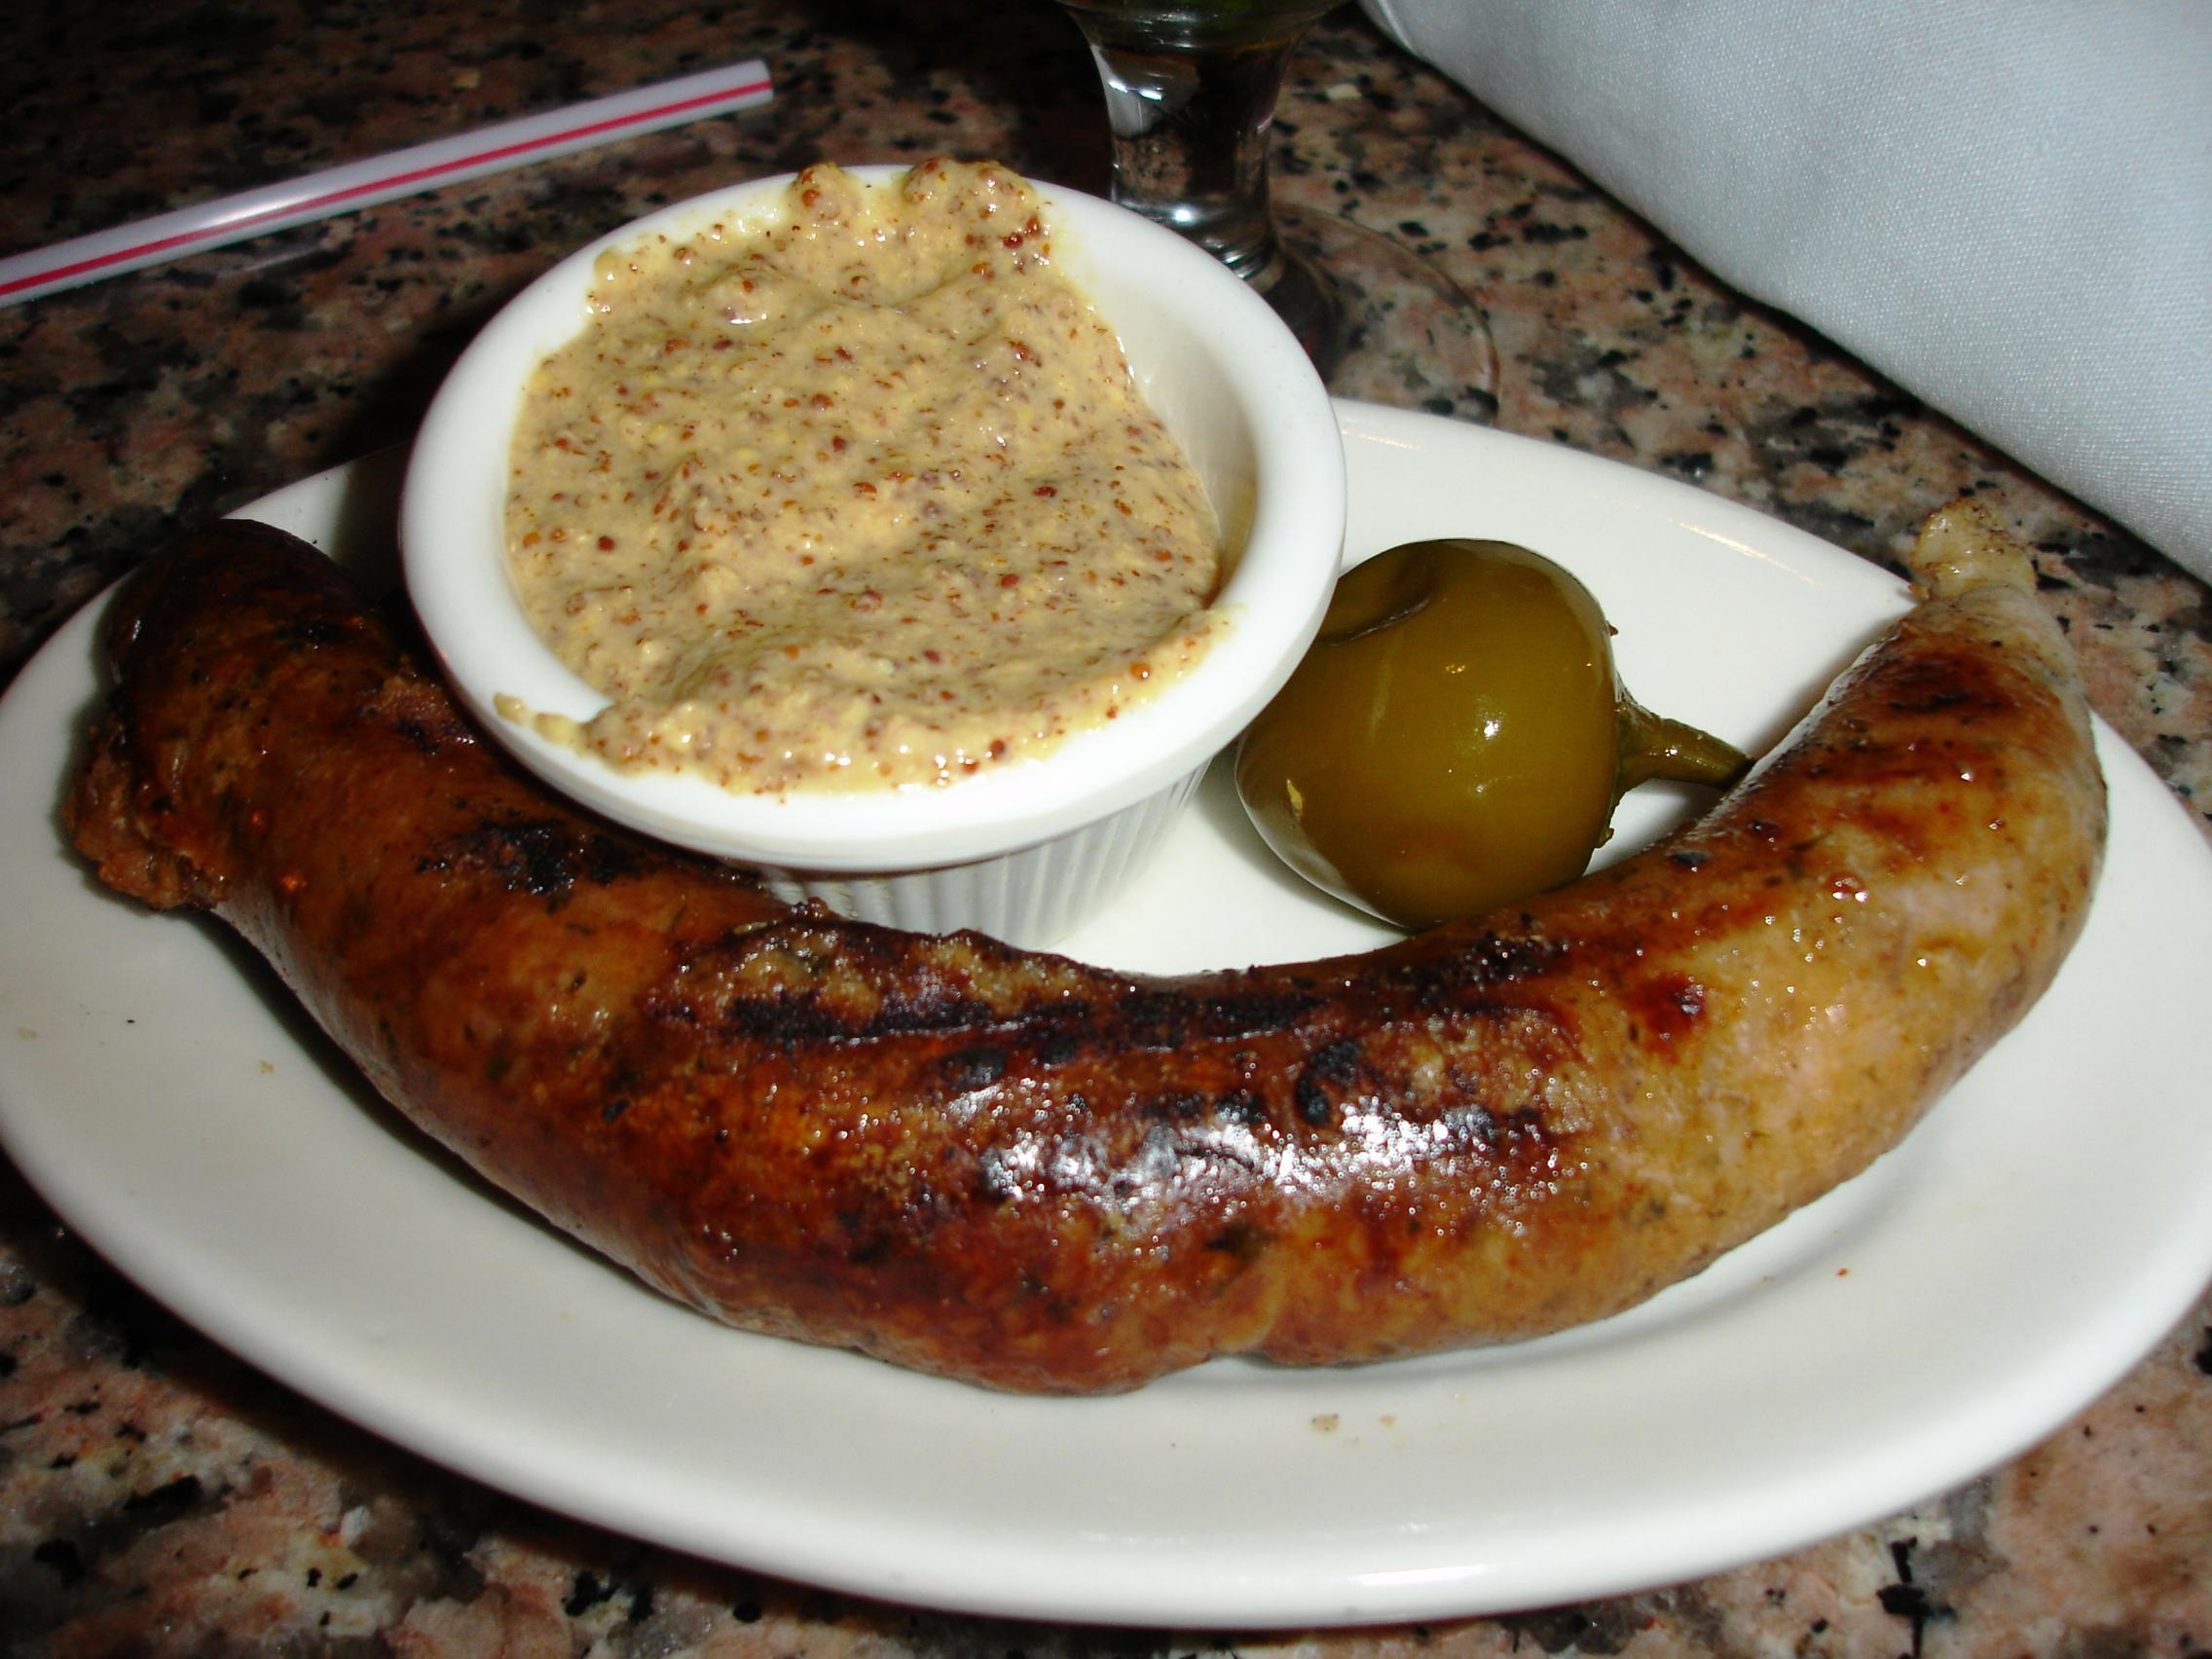 The grilling is unorthodox but you can get a taste of Cajun boudin if you wish, with some good mustard.